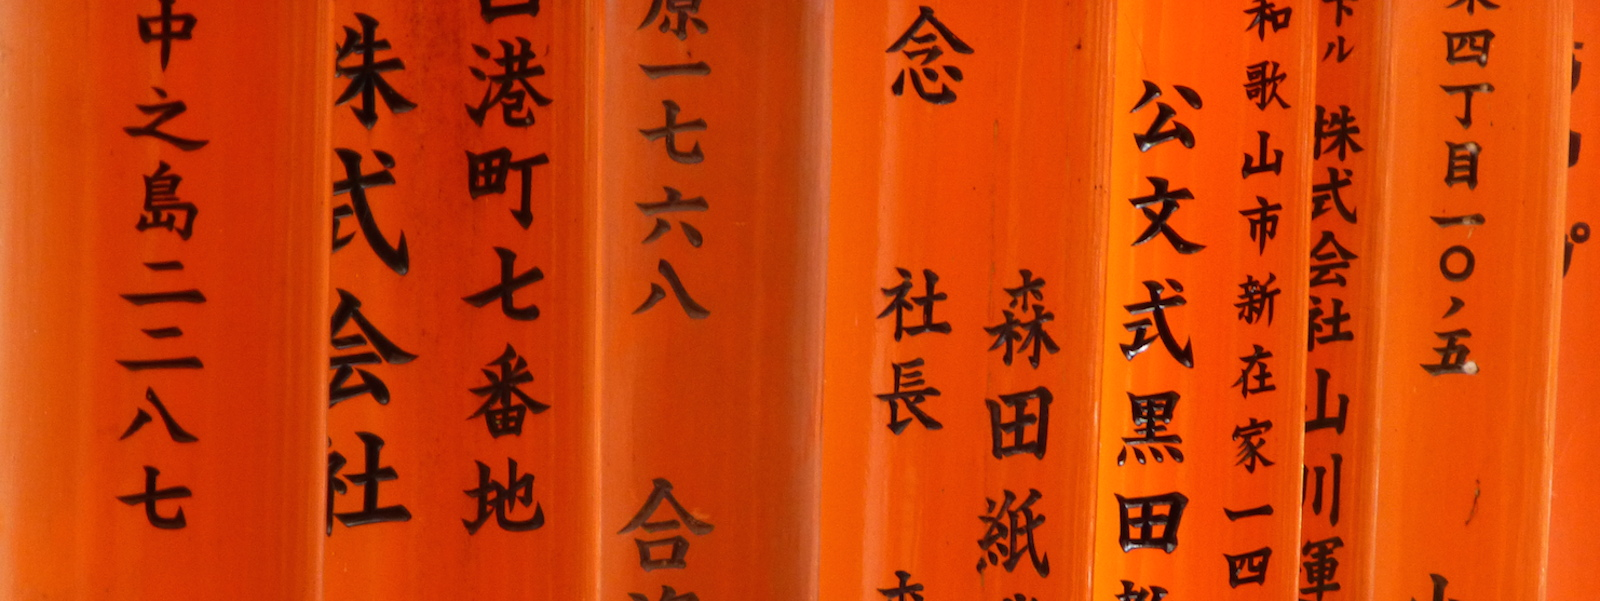 My journey of learning Japanese